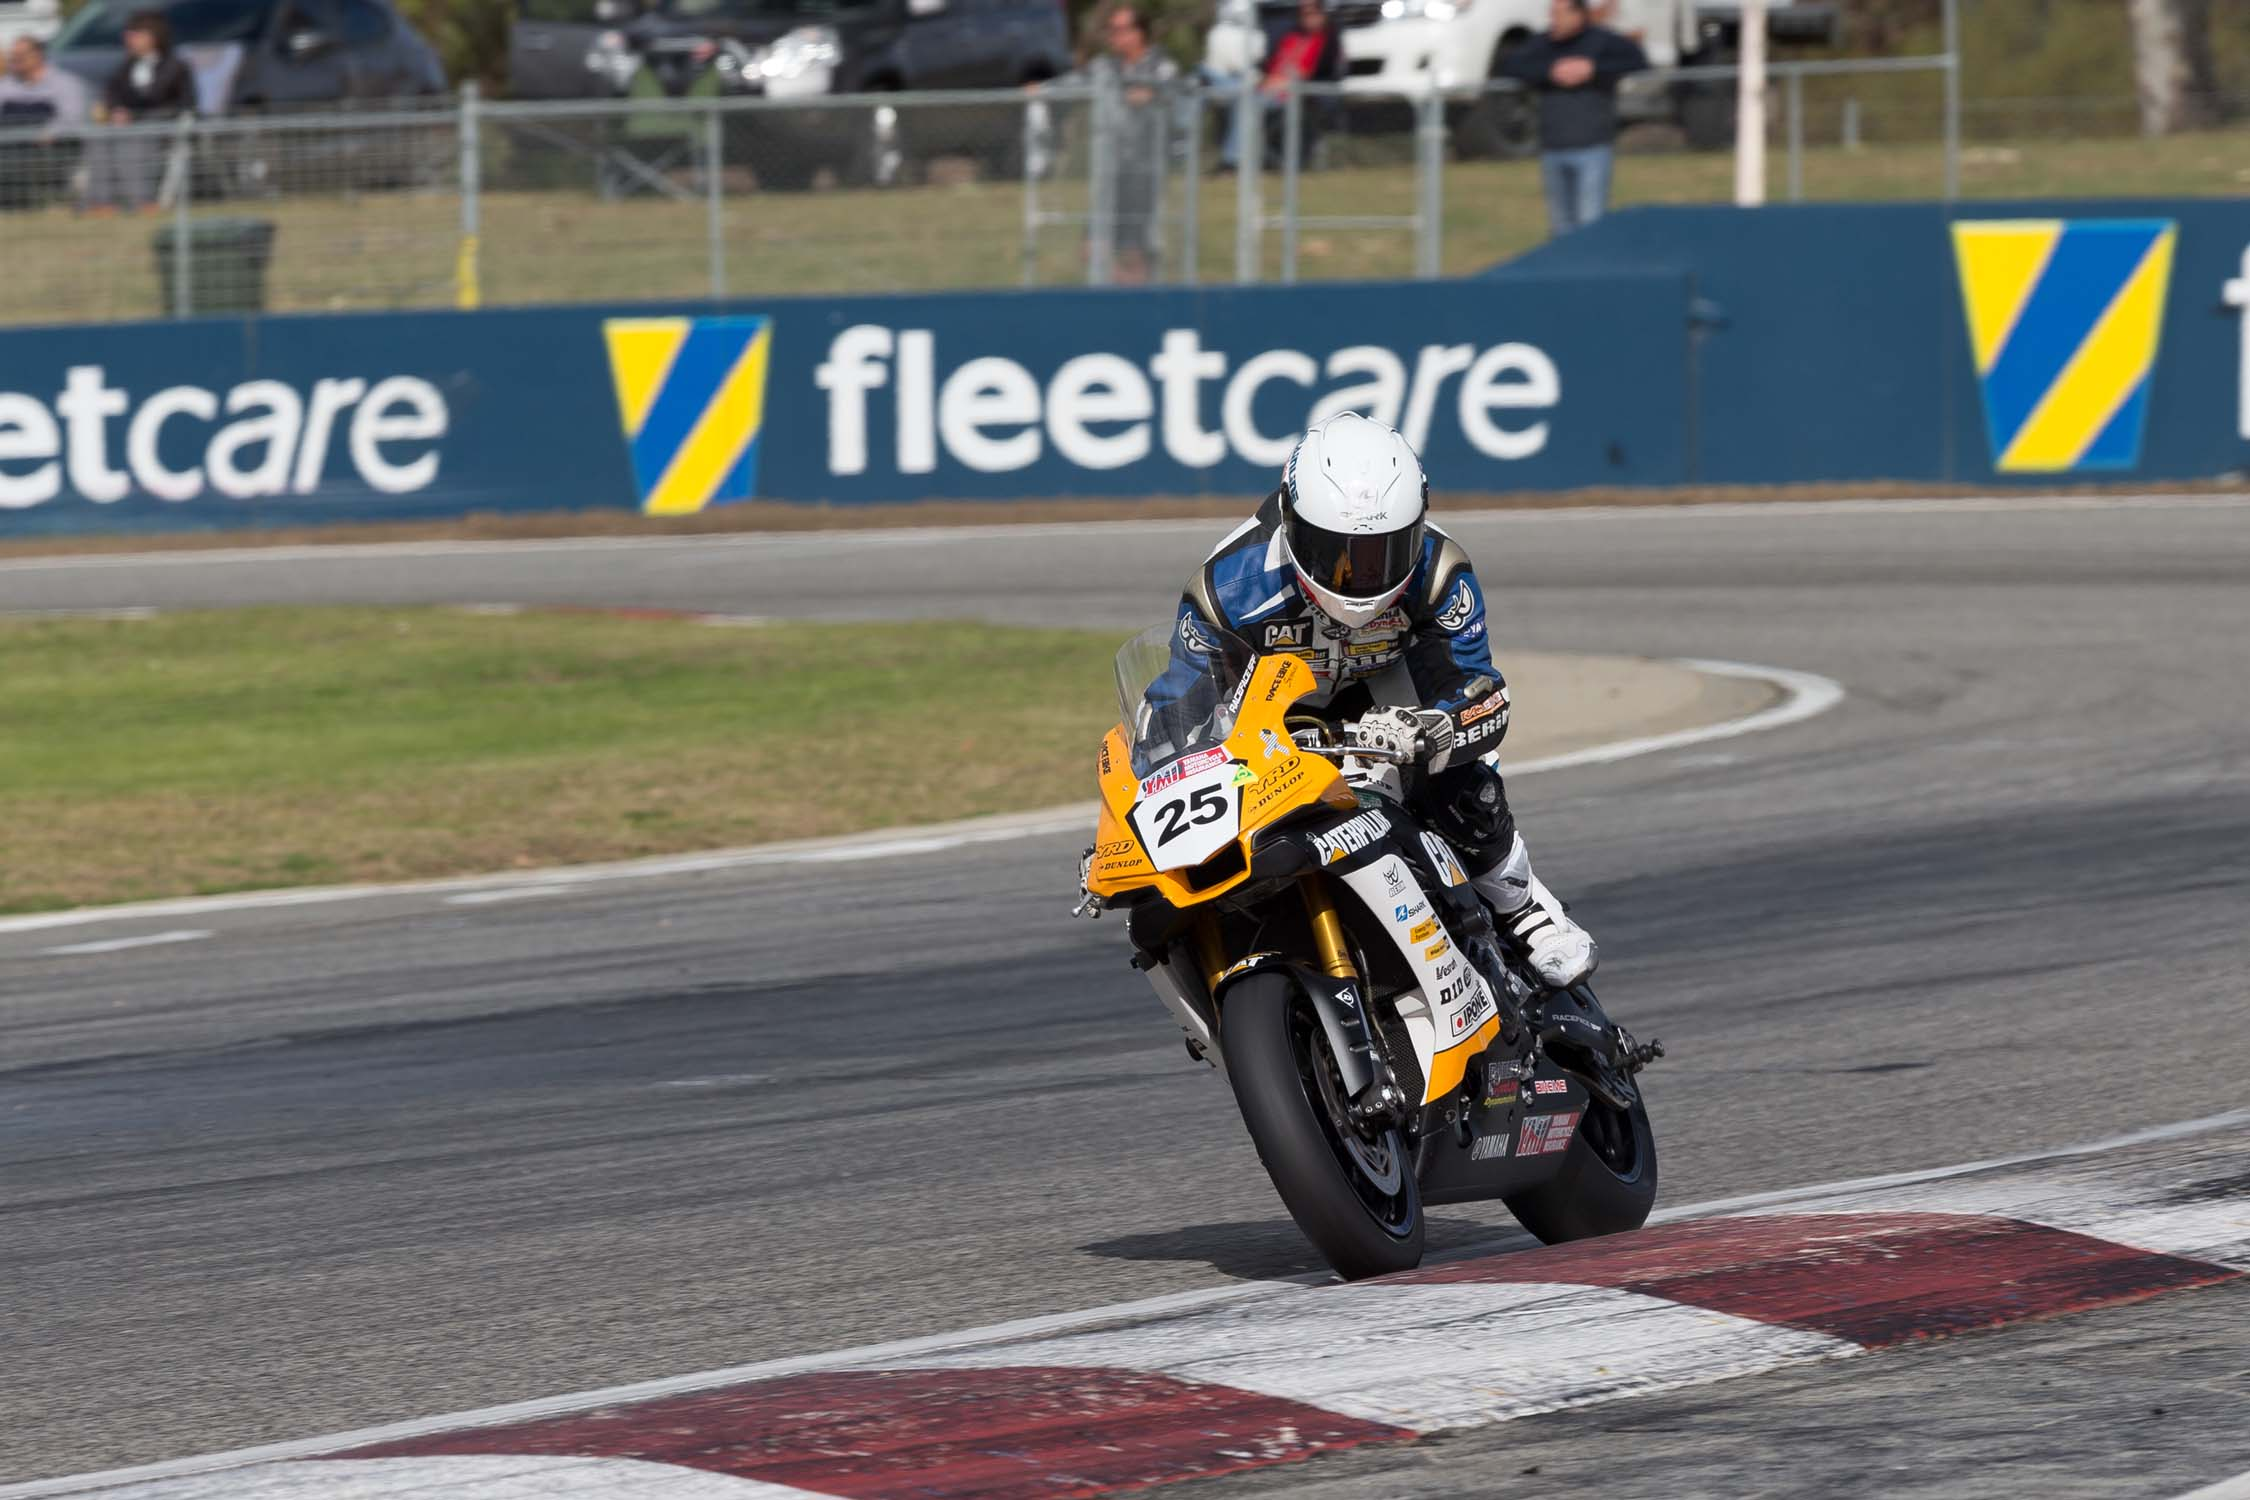 round barbagallo raceway asbk gallery saturday professional academic money our online here custom research paper edited by assisting students through experienced open and skilled team of write my